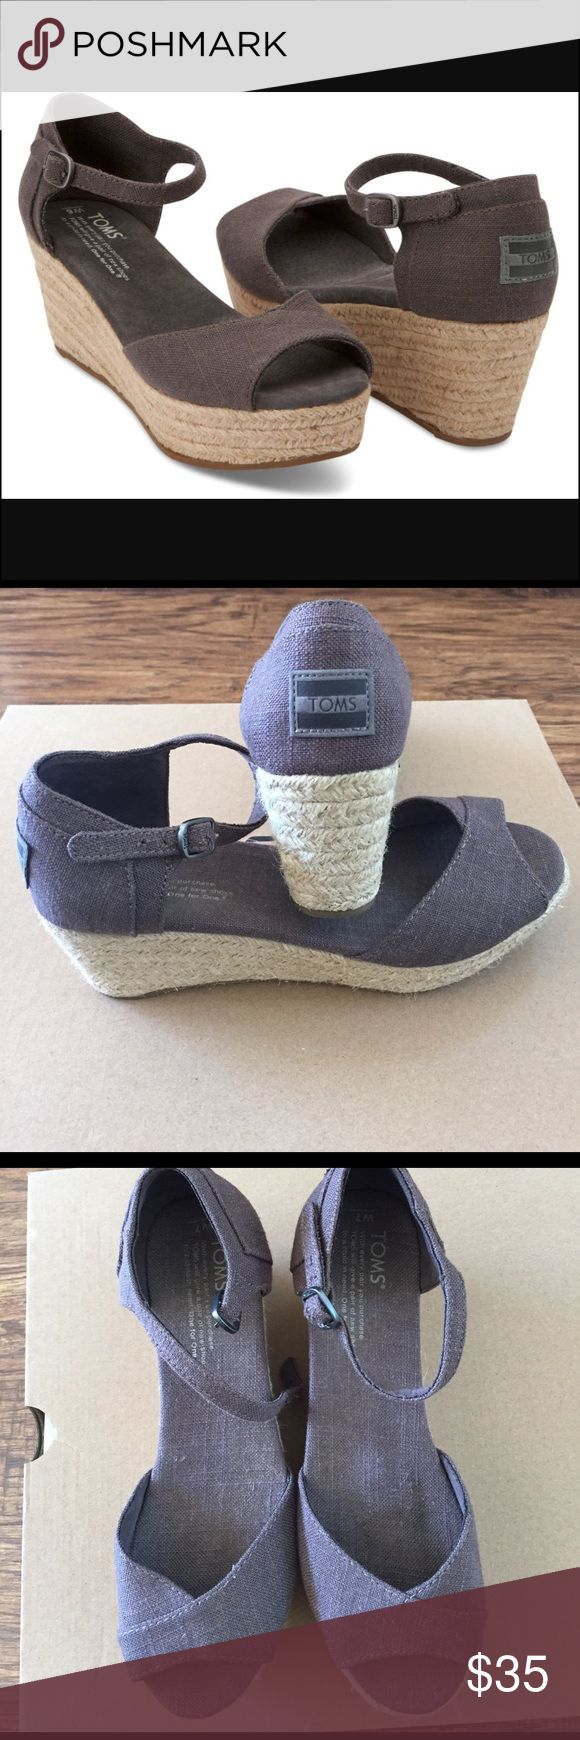 """Tom's Canvas platform wedge sandals 7M NWOT Tom's wedge ankle-strap sandals. Color is ash linen. Jute wrapped 2.5"""" wedge heel with 1.25"""" platform. Runs true to size. Perfect condition. Never worn, except in house trying them on. Tom's Shoes Sandals"""